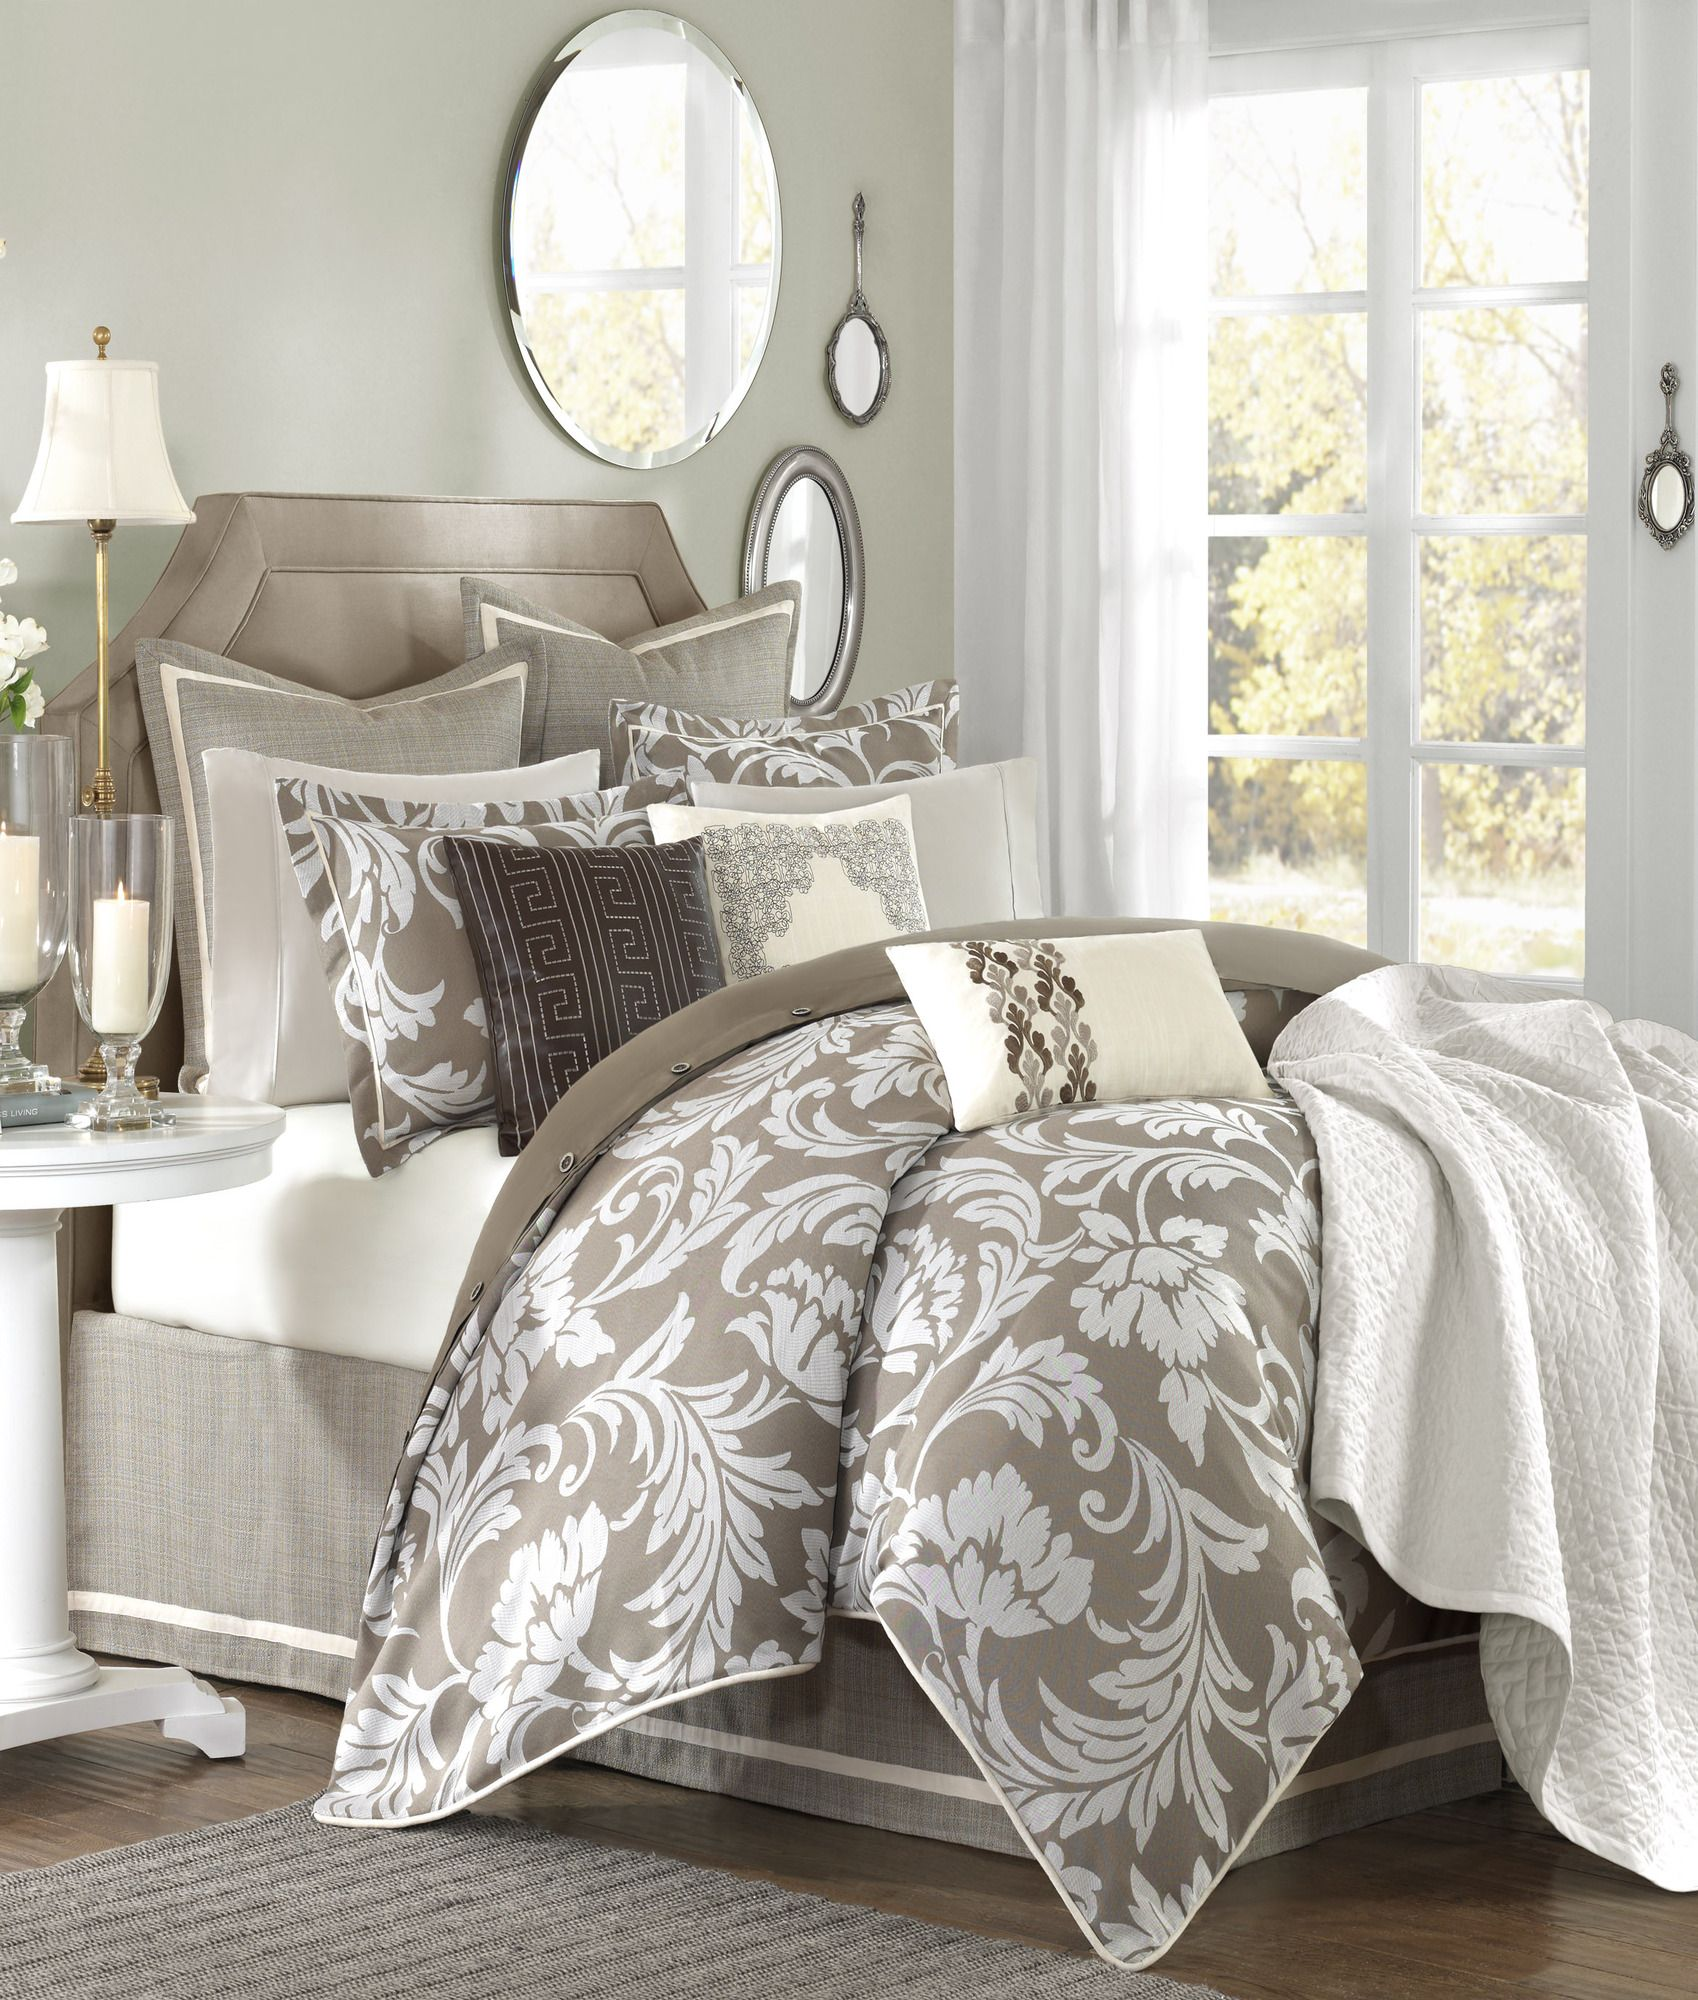 Hampton Hill Bellville Bedding Collection Bedroom Bed Home Decor Bedroom Decor